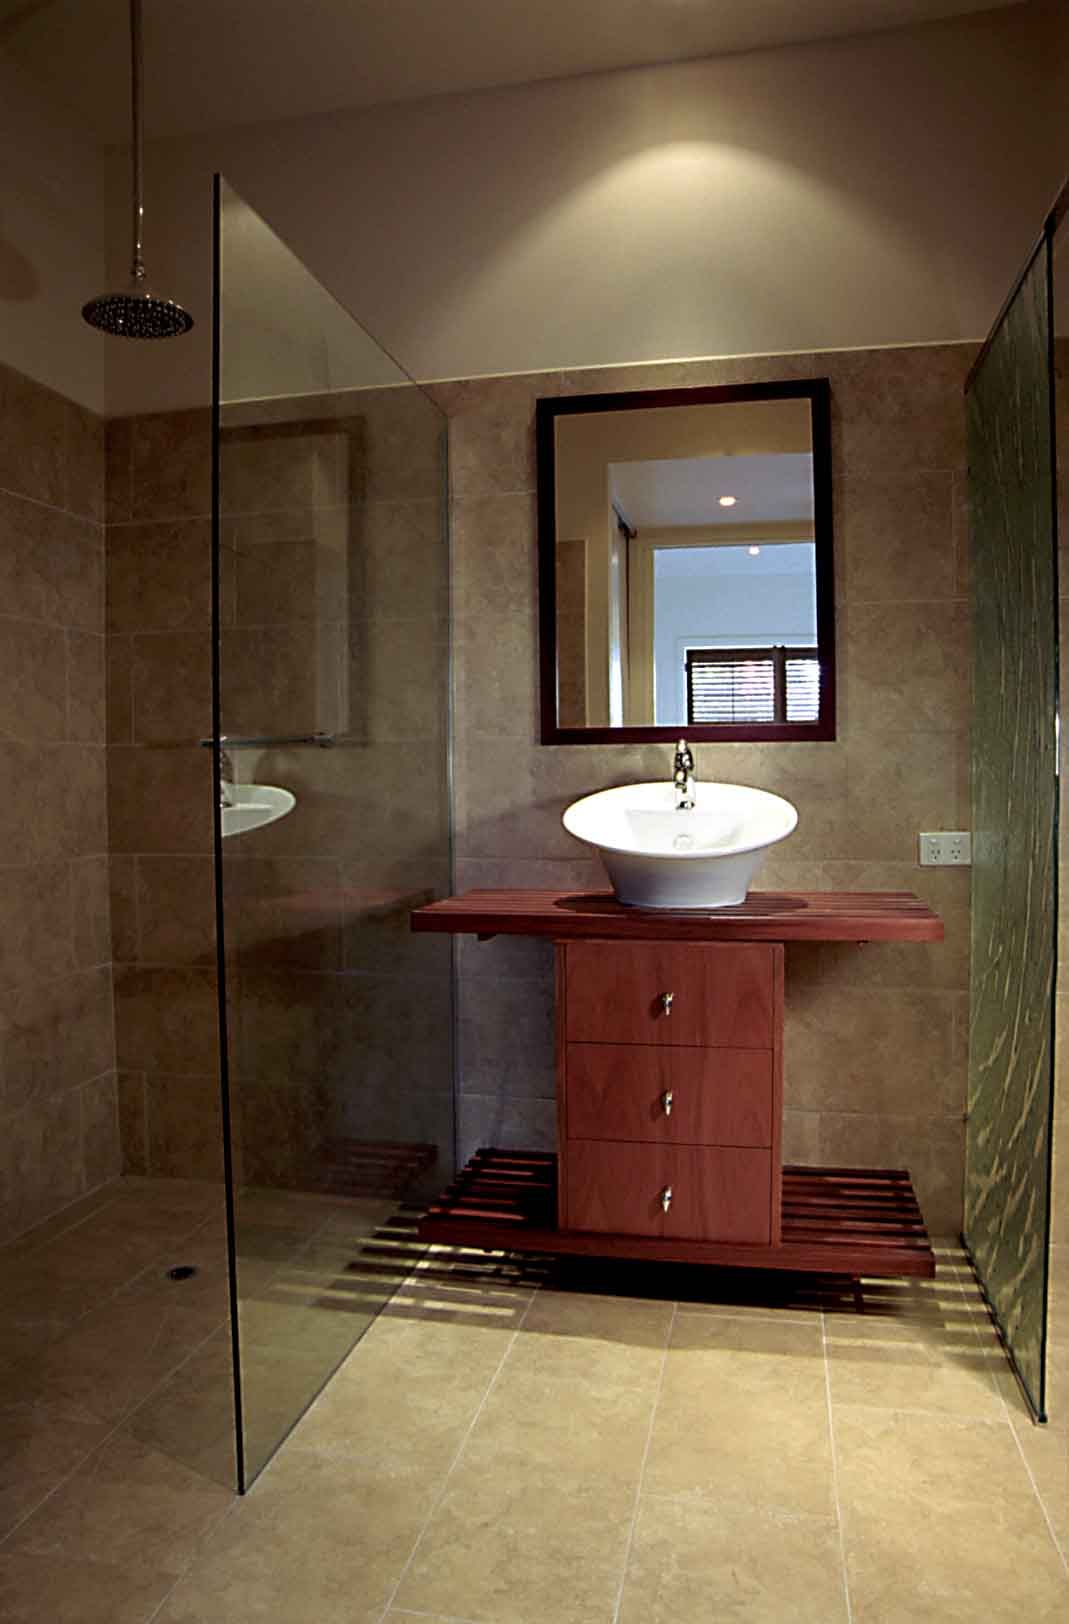 Wet Room Design For Small Bathrooms Small Ensuite Bathroom Design Ideas Small Bathroom Wet